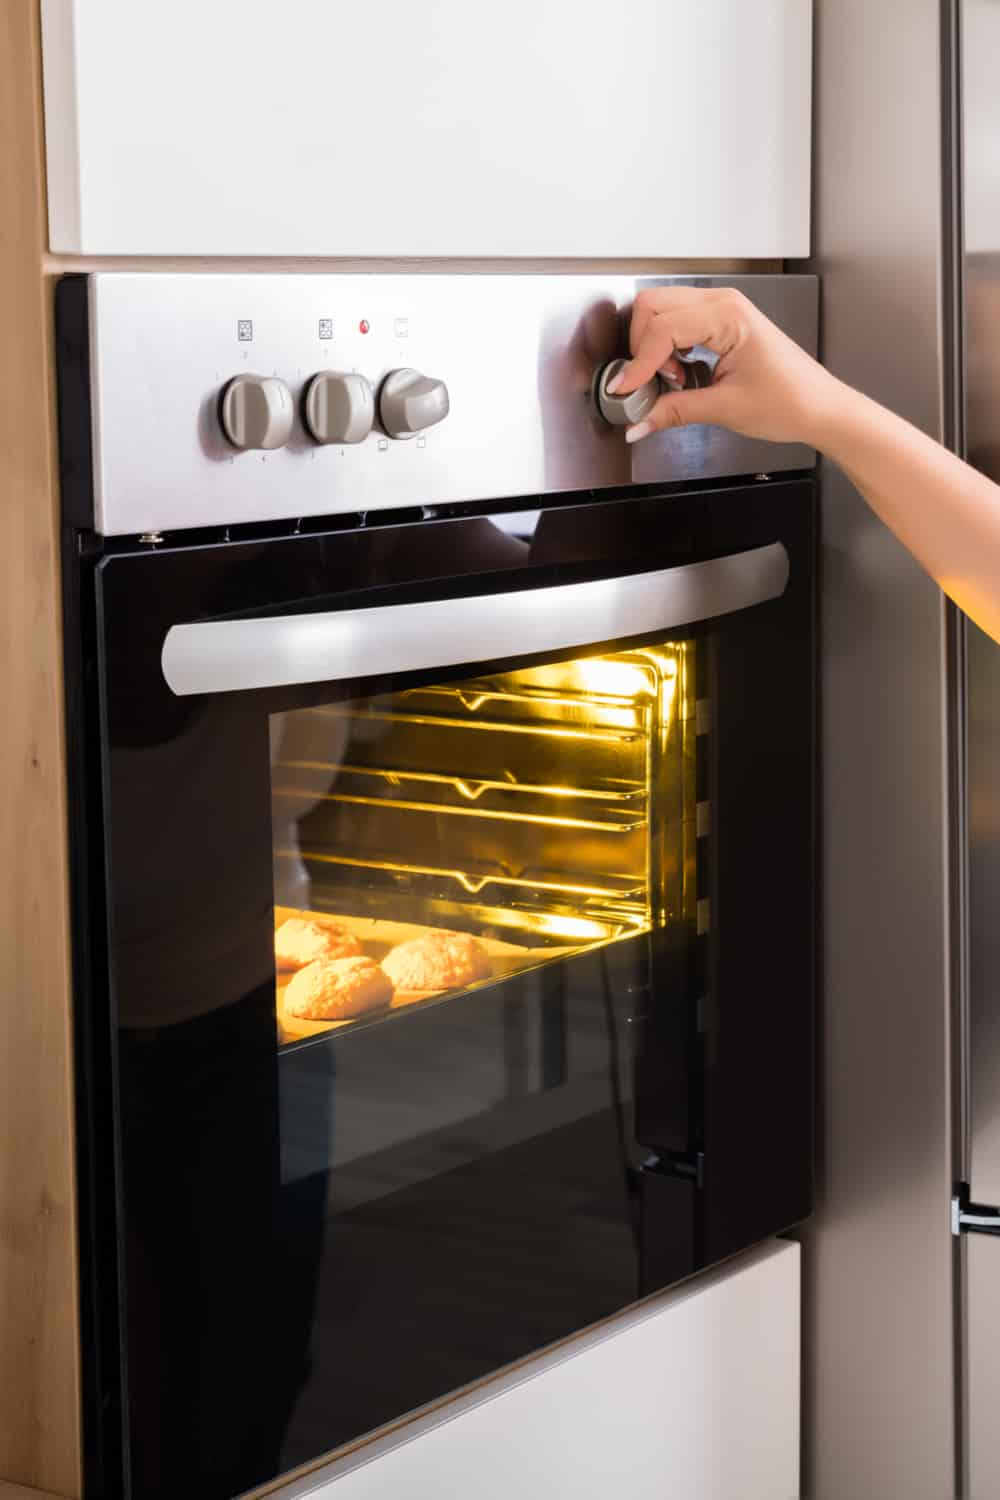 How to Turn Your Oven into a Dehydrator